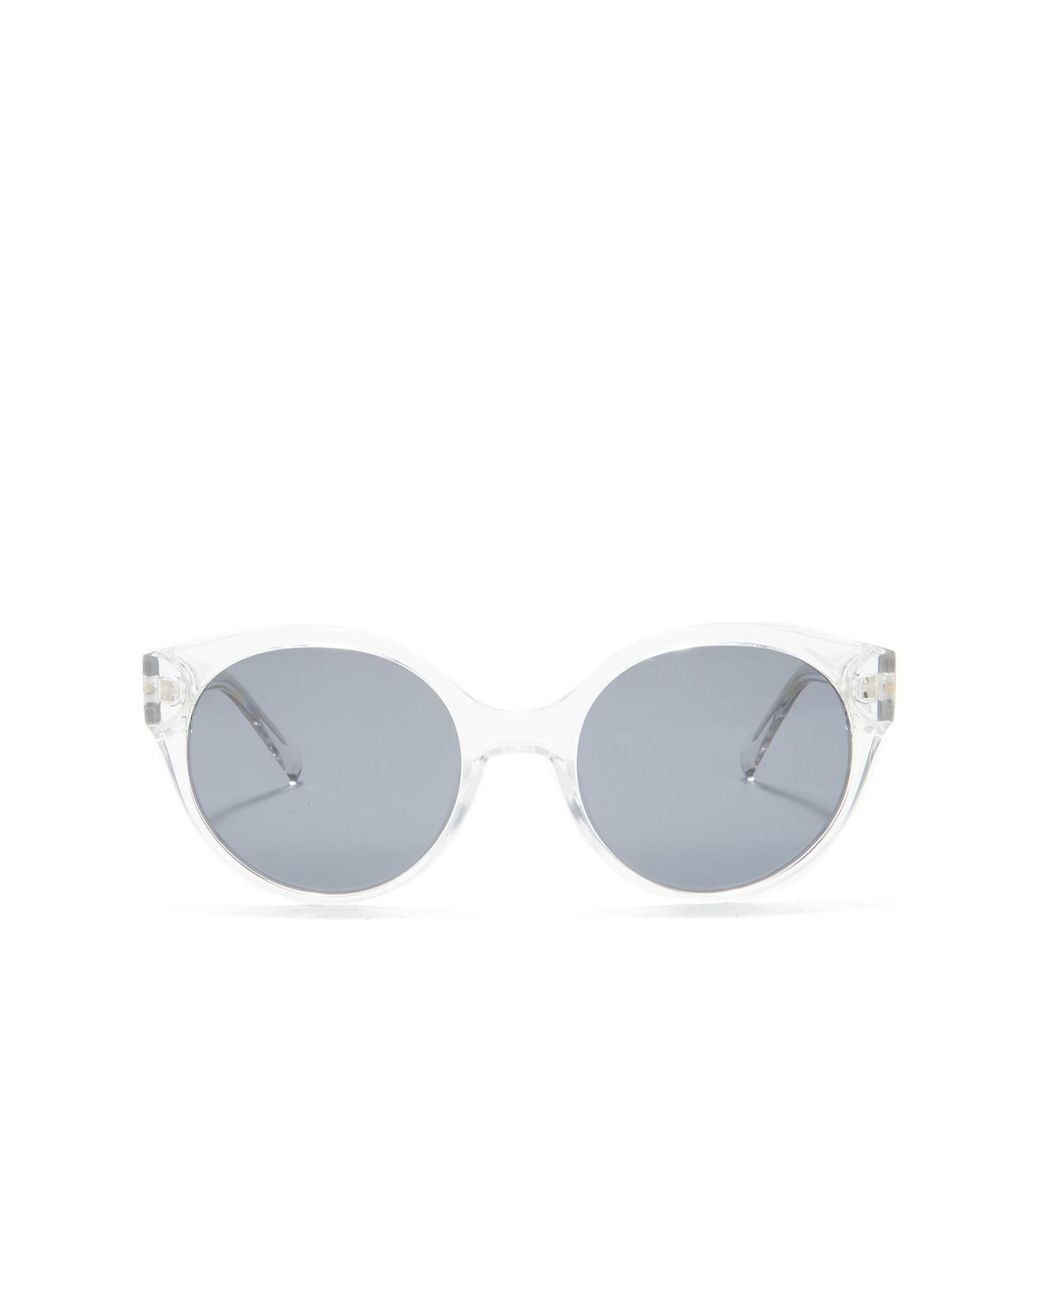 af3bb8a183f2 Cole Haan Polarized 52mm Round Sunglasses - Lyst